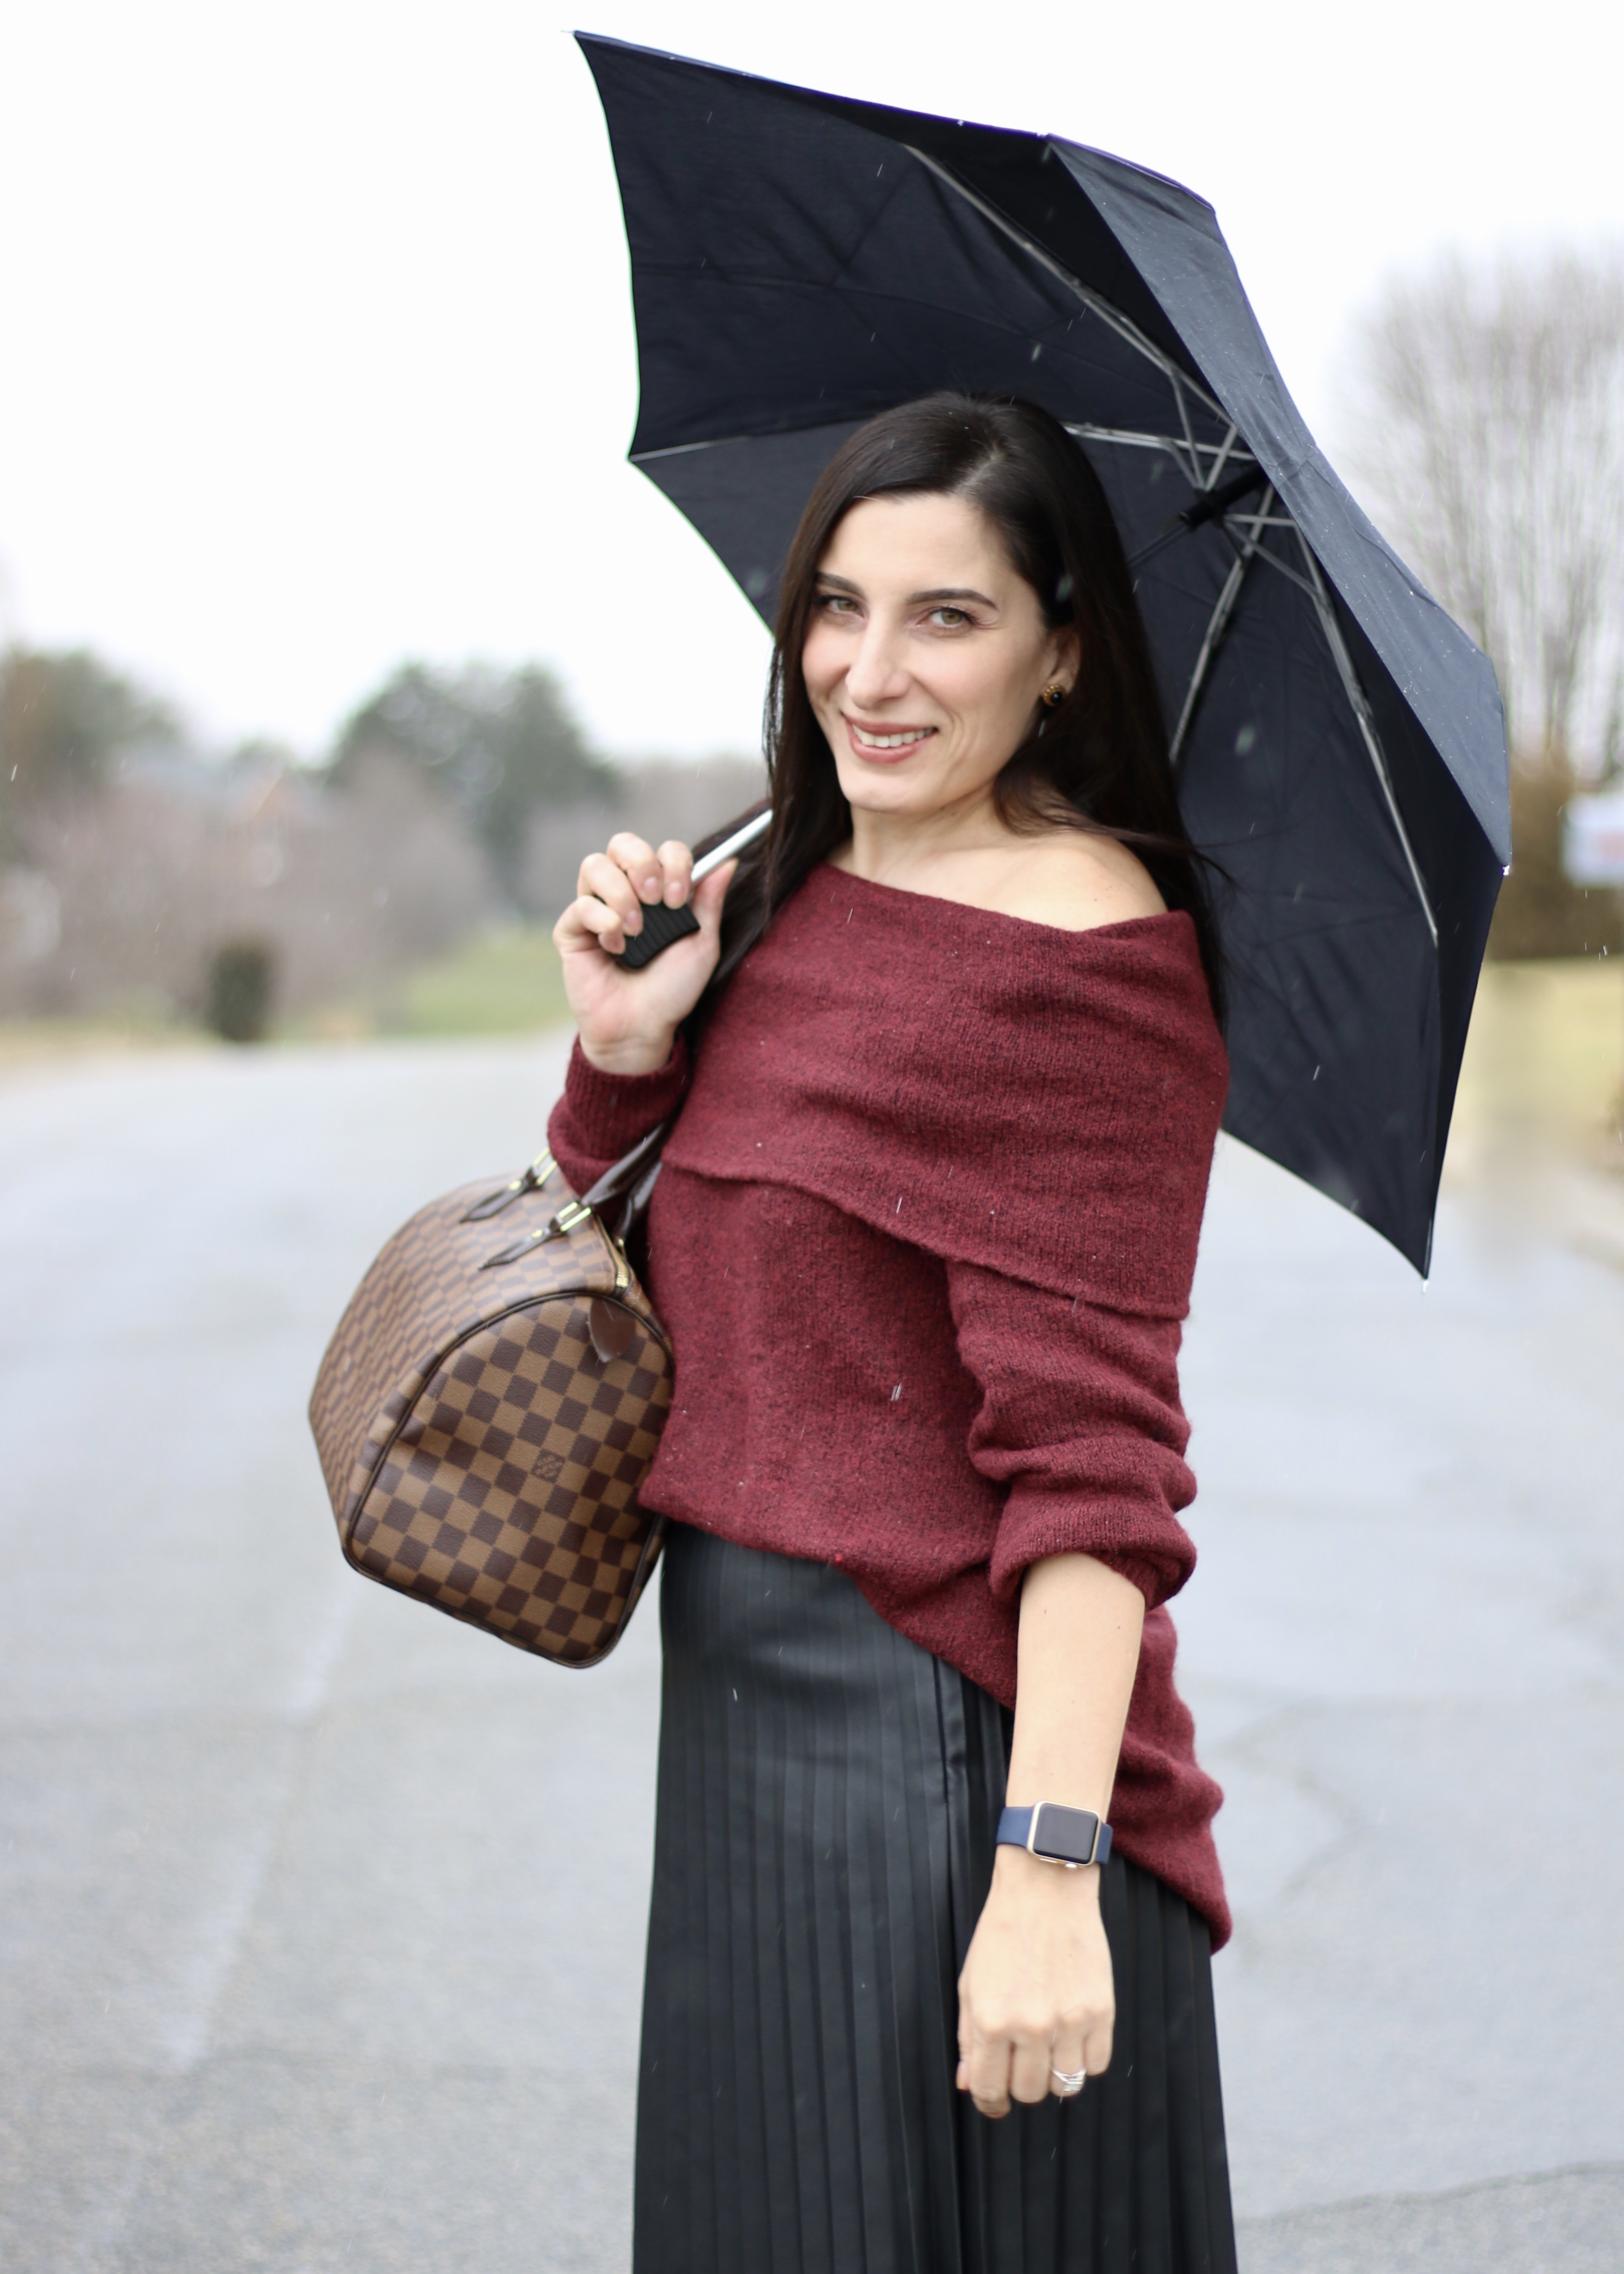 Off The Shoulder Sweater, Pleated Leather Skirt, Over The Knee Boots, Louis Vuitton Speedy 30